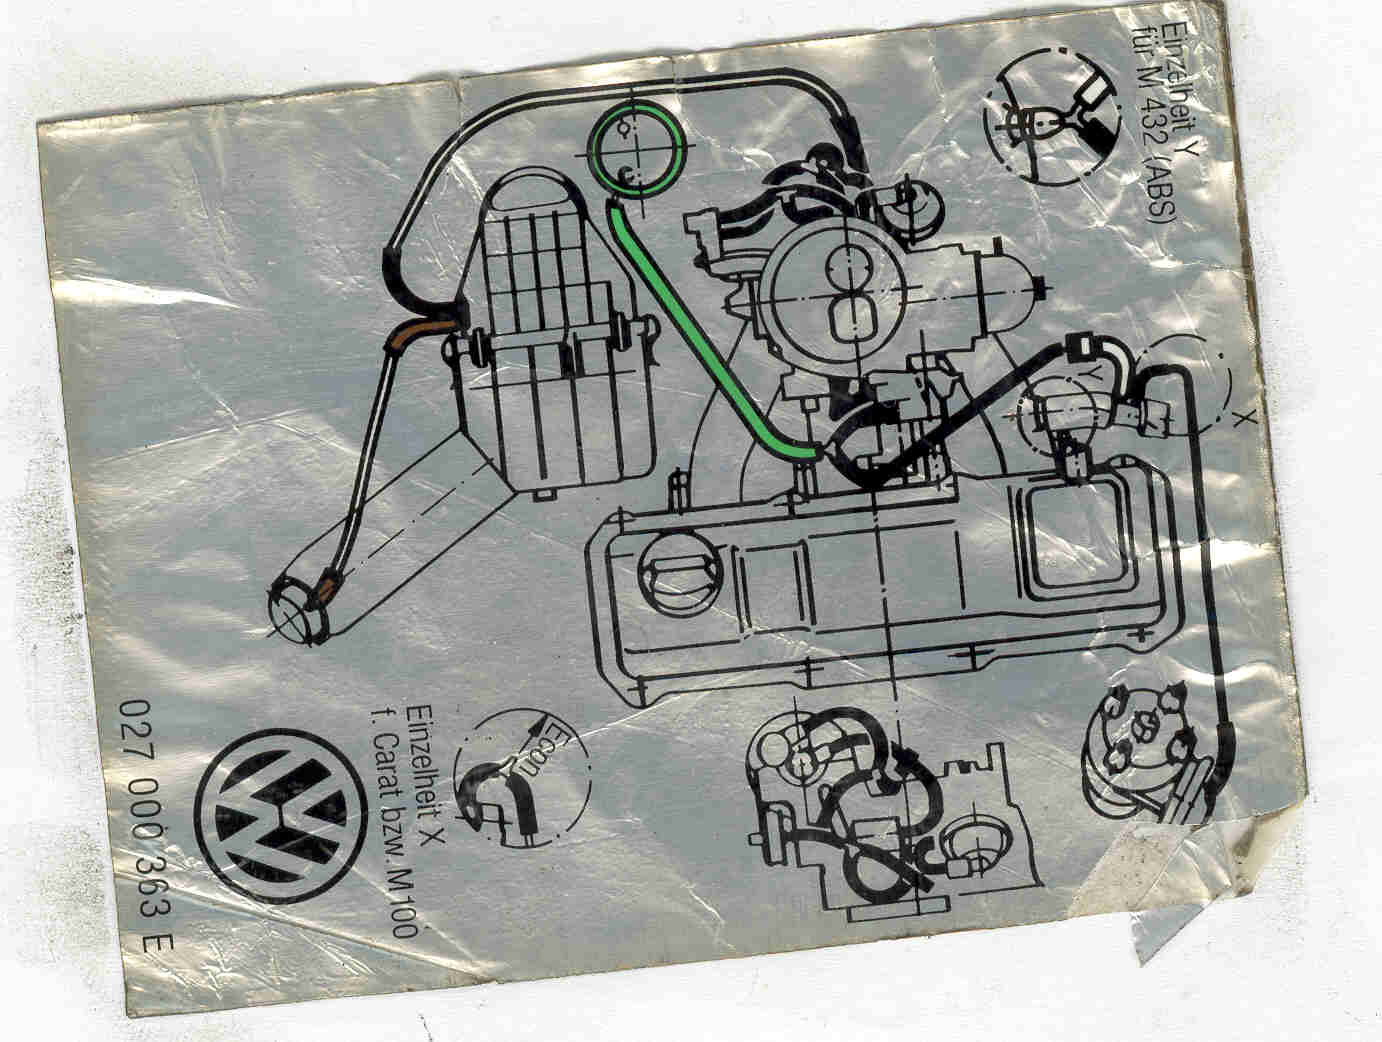 Jetta Mk2 18 Carb Vacuum Hose Connections The Volkswagen Club Of Vw 8v Engine Diagram Image